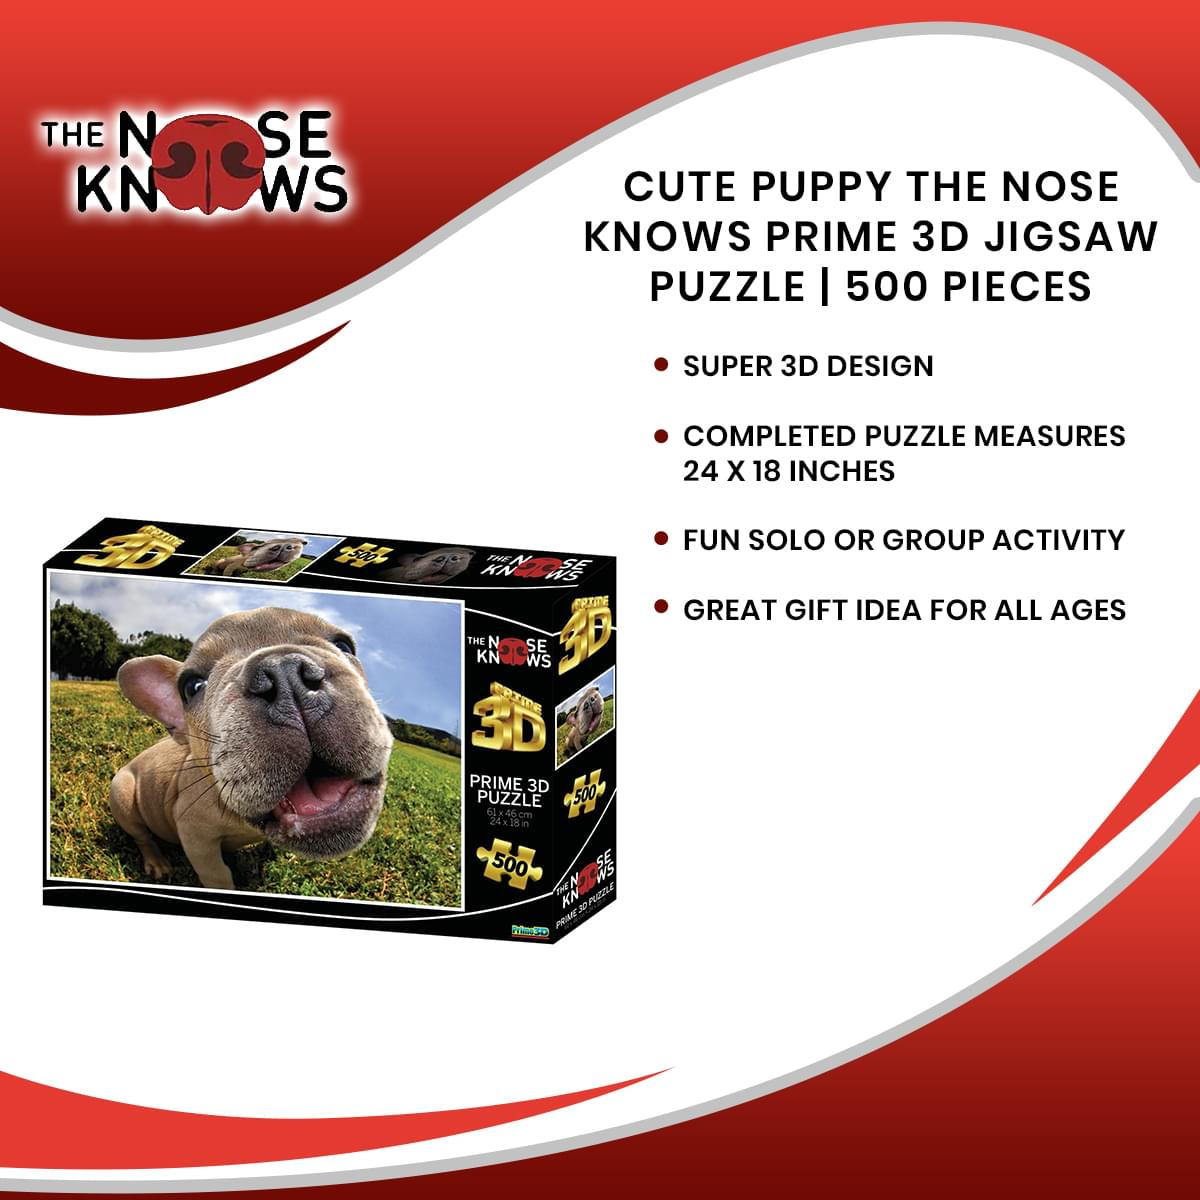 Cute Puppy The Nose Knows Prime 3D Jigsaw Puzzle | 500 Pieces